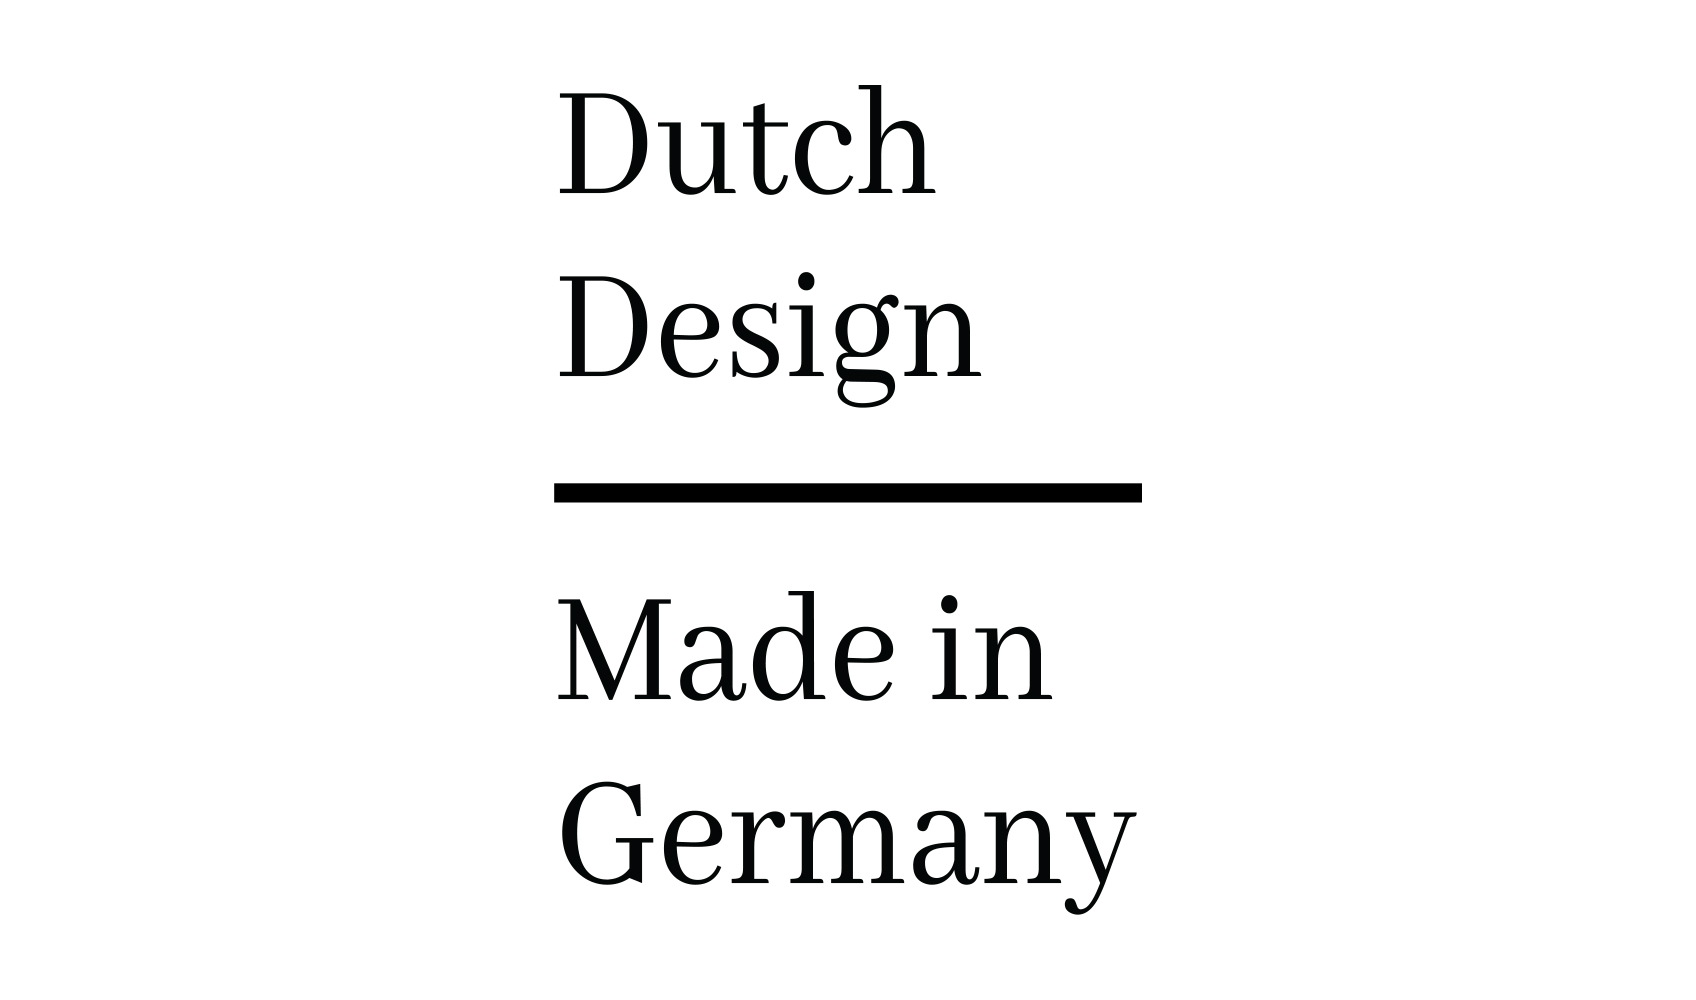 dutch-design-made-in-germany.jpg